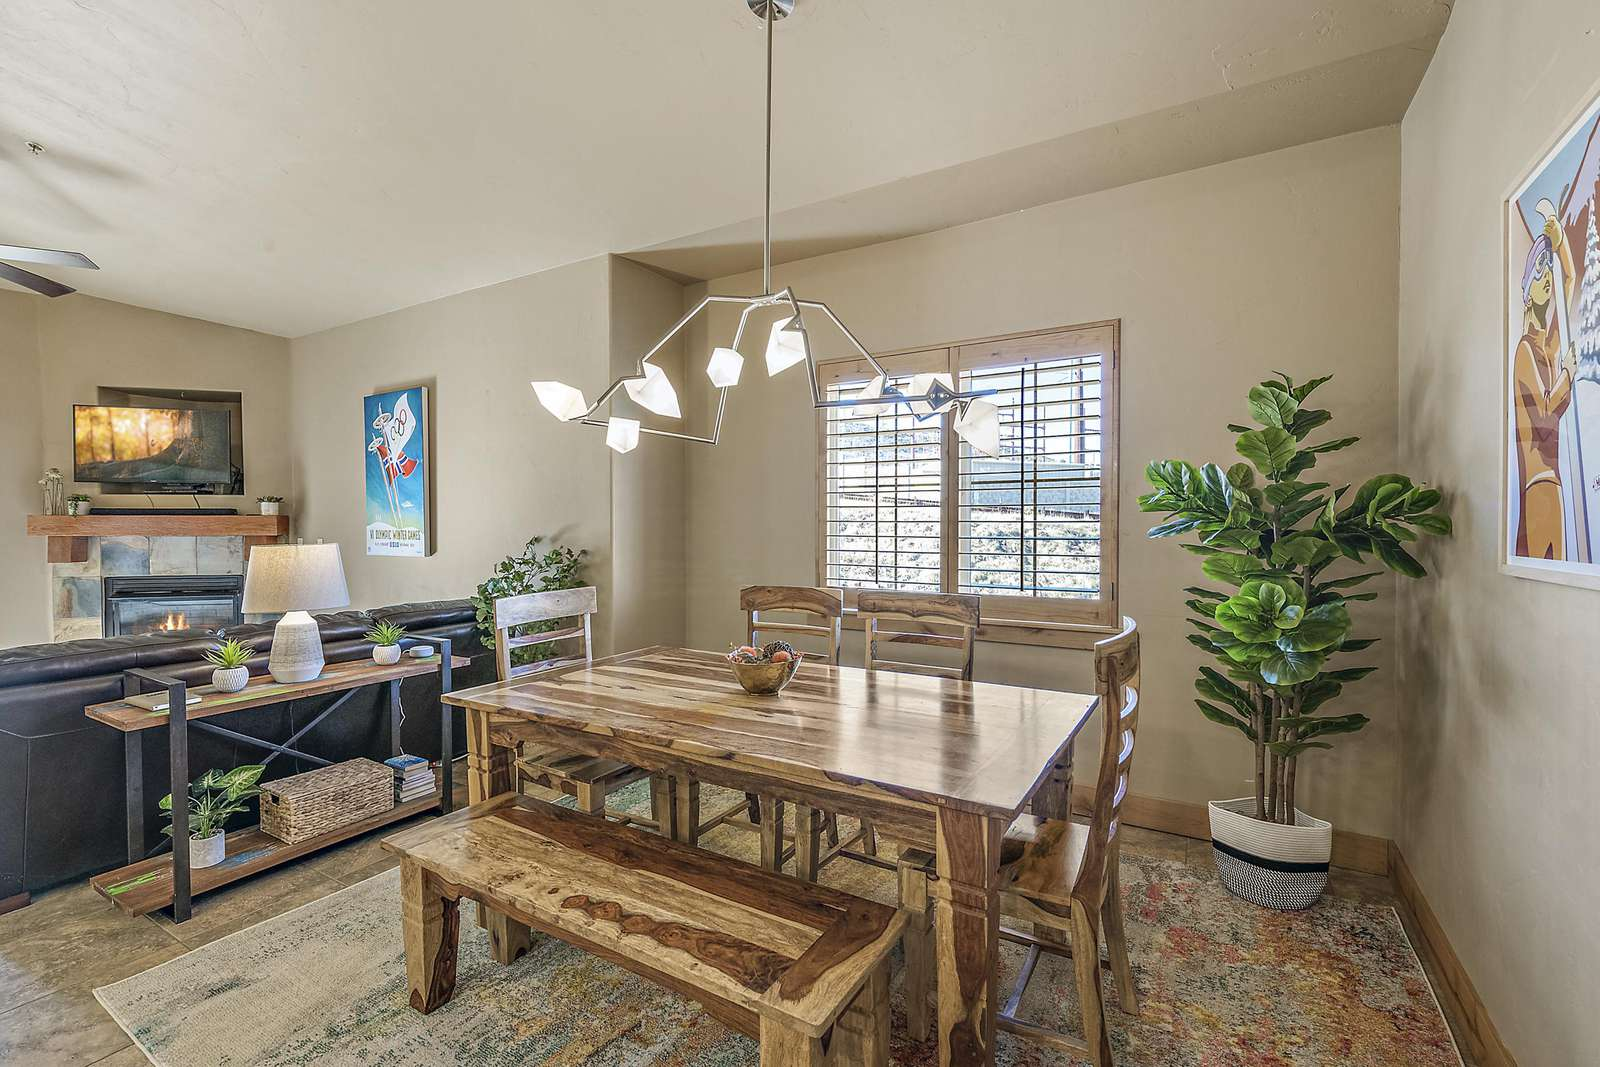 Dining table next to living area